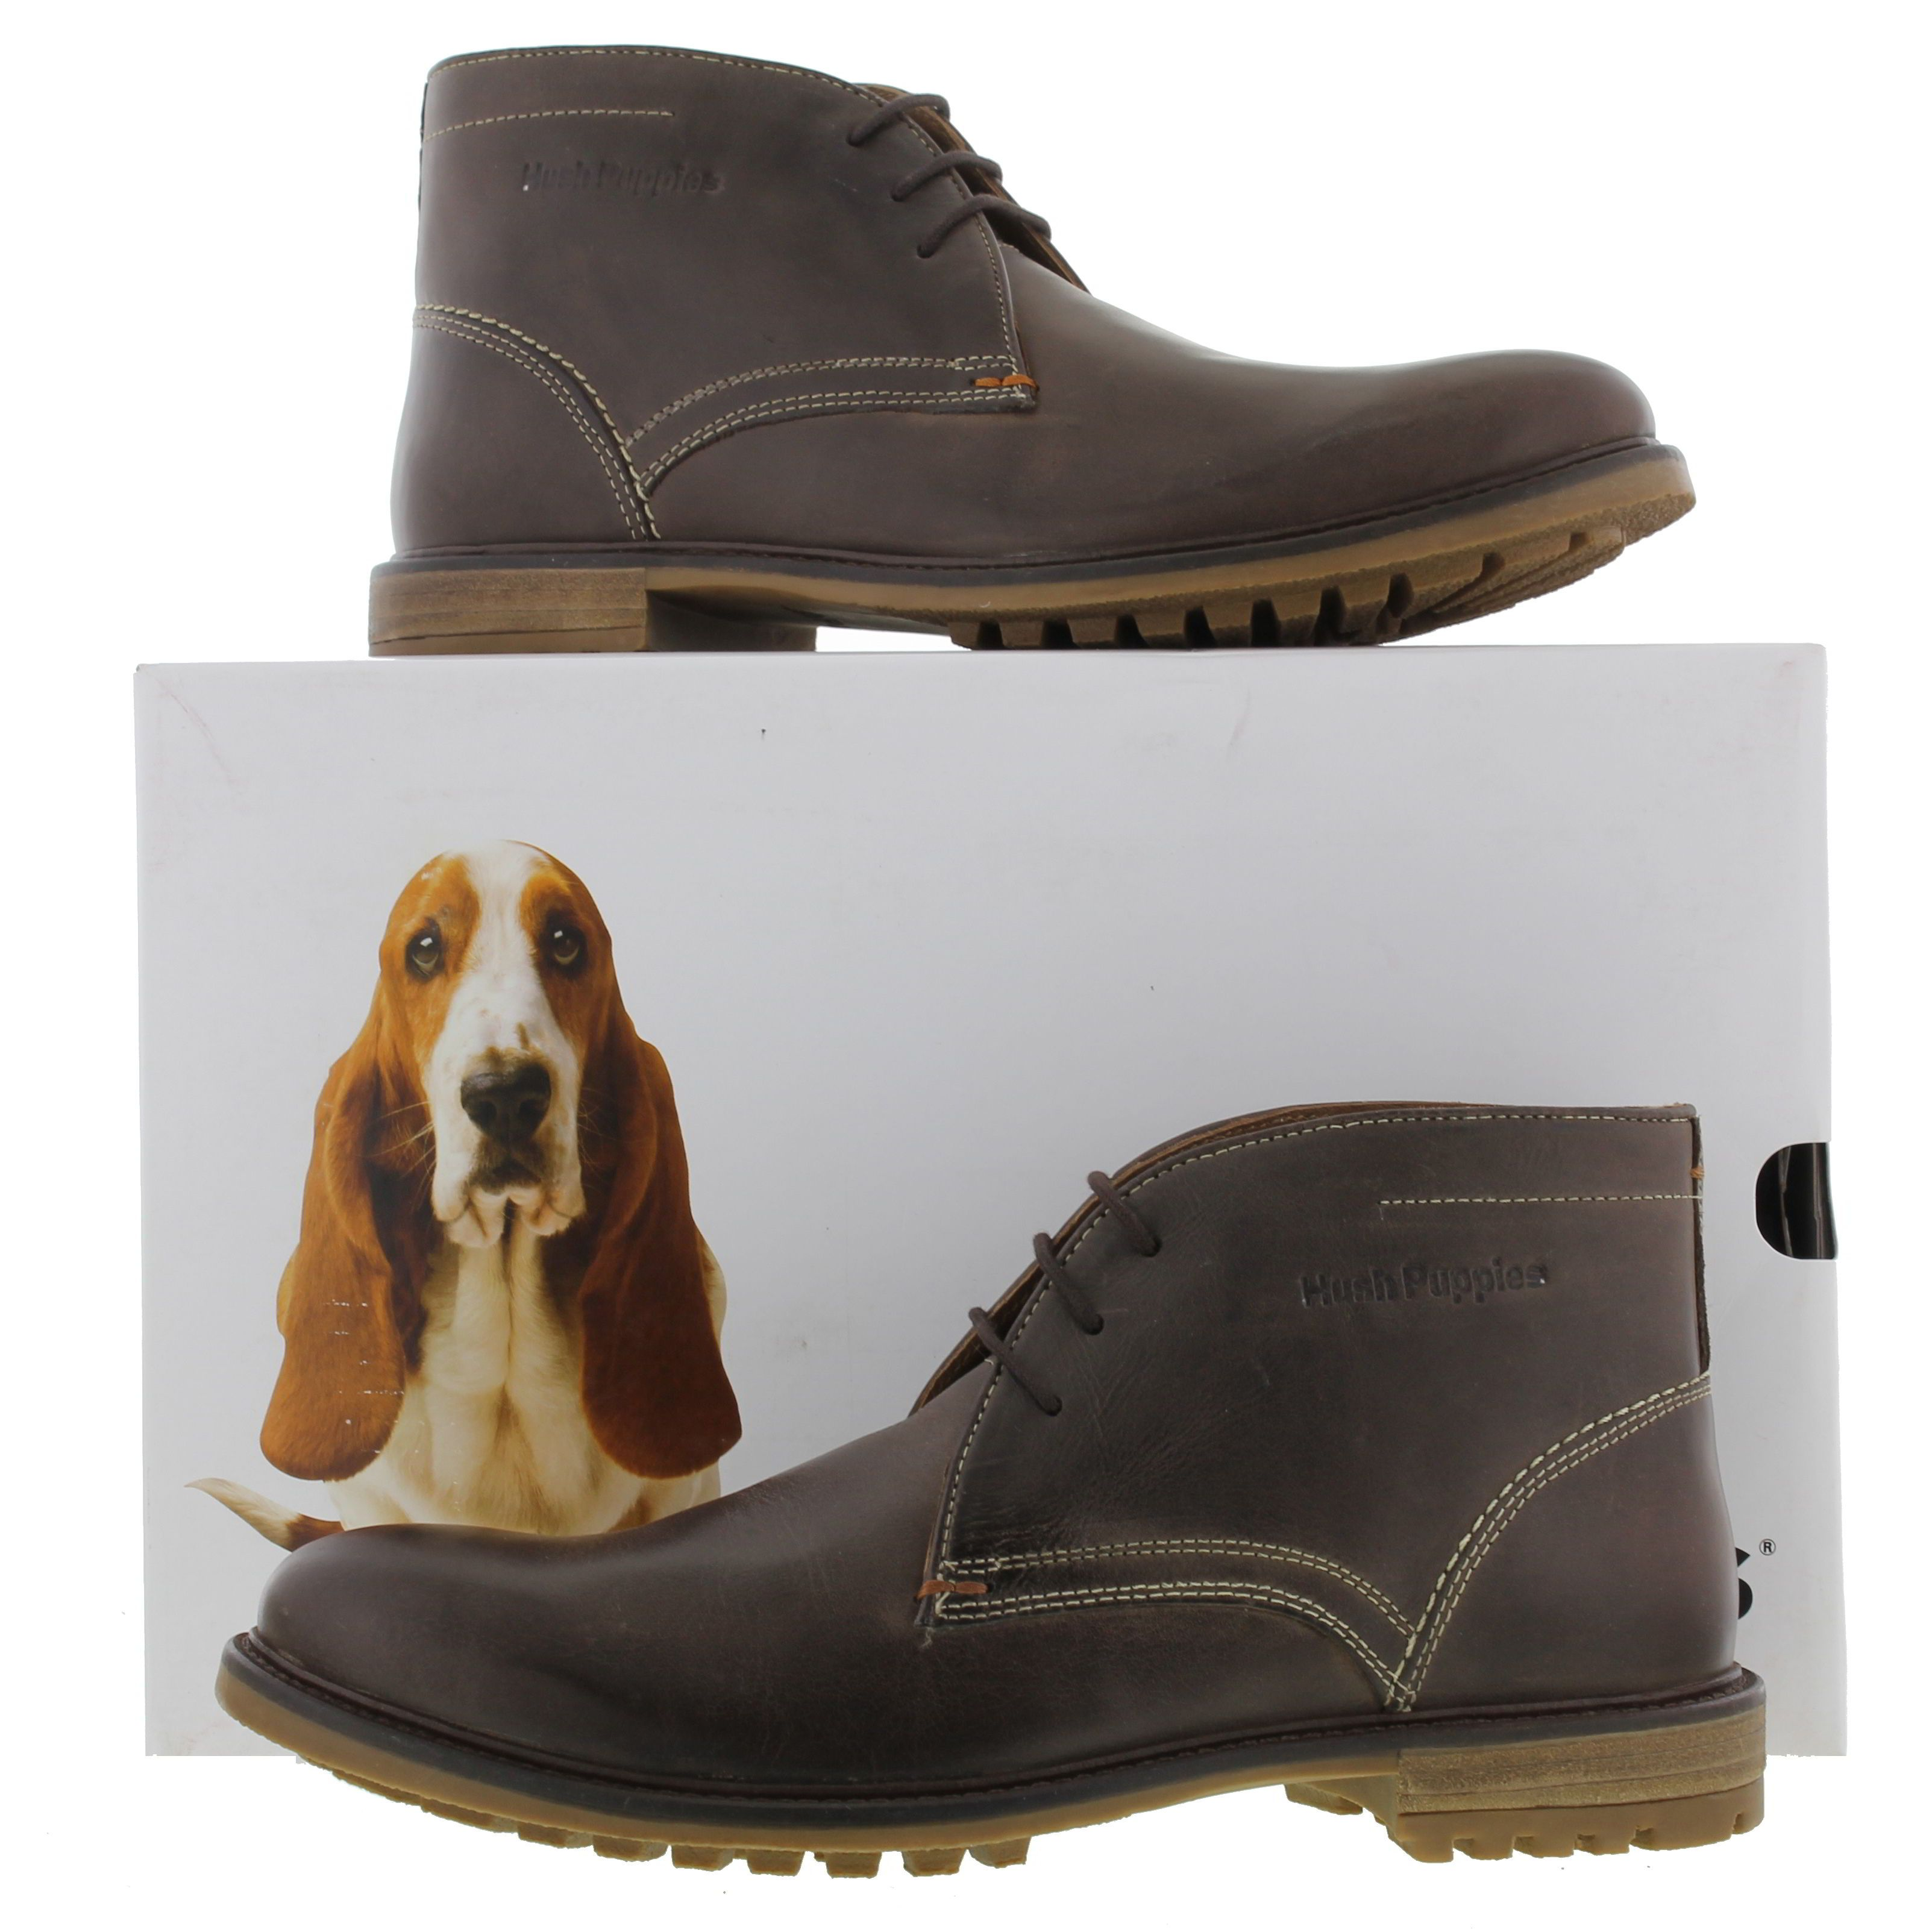 Hush Puppies Mens Benson Rigby Ankle Boots Dark Brown 84 99 Boots